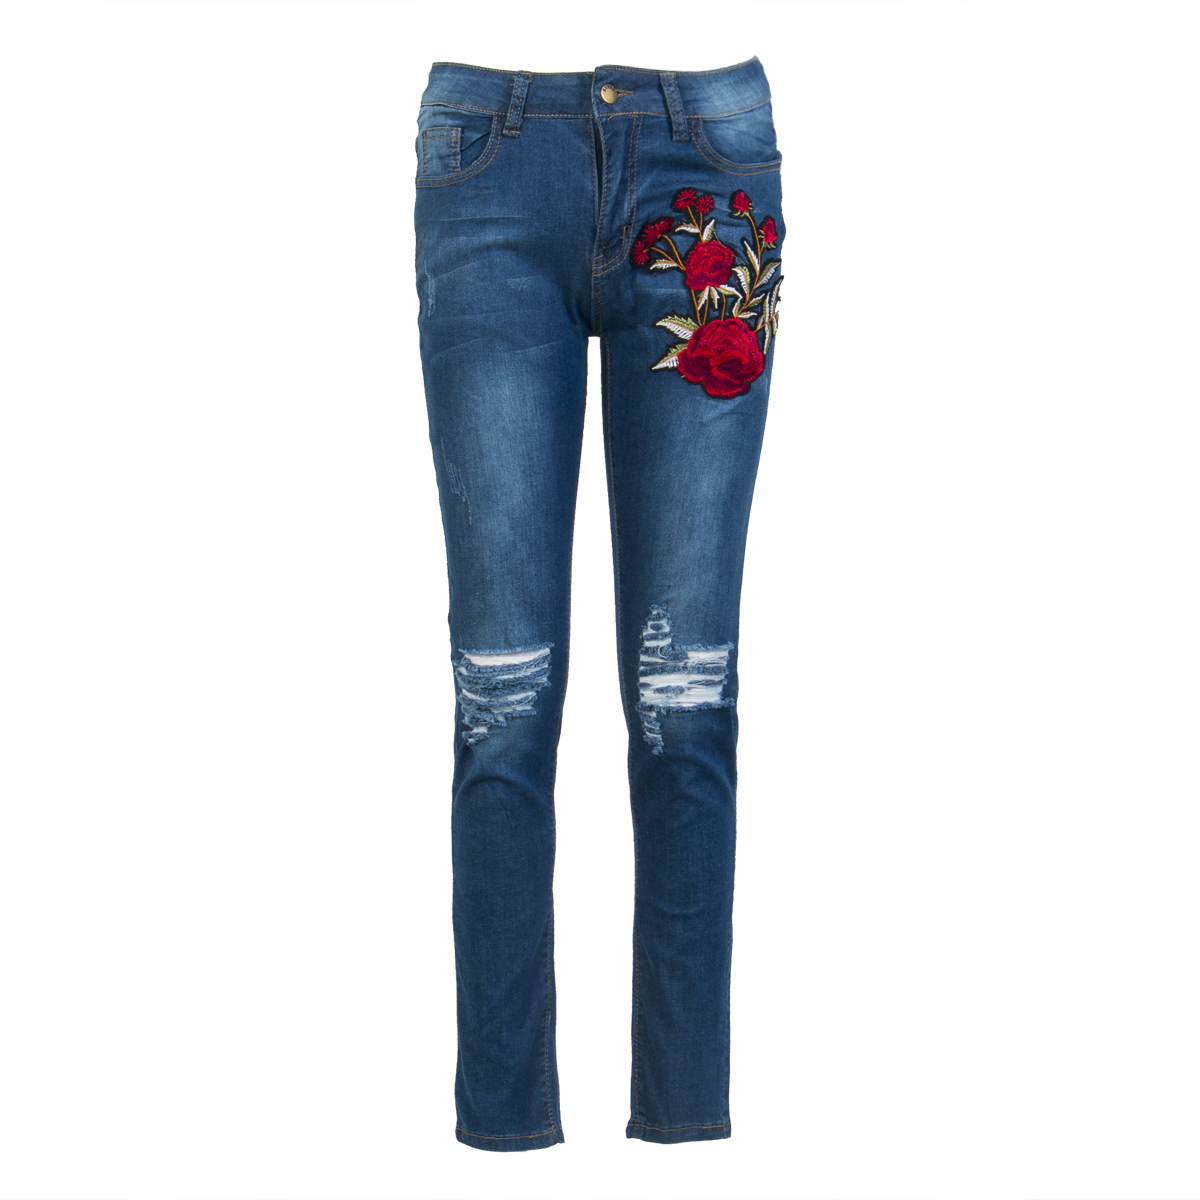 Plus Size Women Denim Skinny Pants High Waist Hole Stretch Trousers Slim Pencil Jeans Stylish Floral Embroidery Pencil Jeans size 26 40 women fashion jeans pencil pants high waist jeans sexy slim elastic skinny pants trousers fit lady jeans plus size